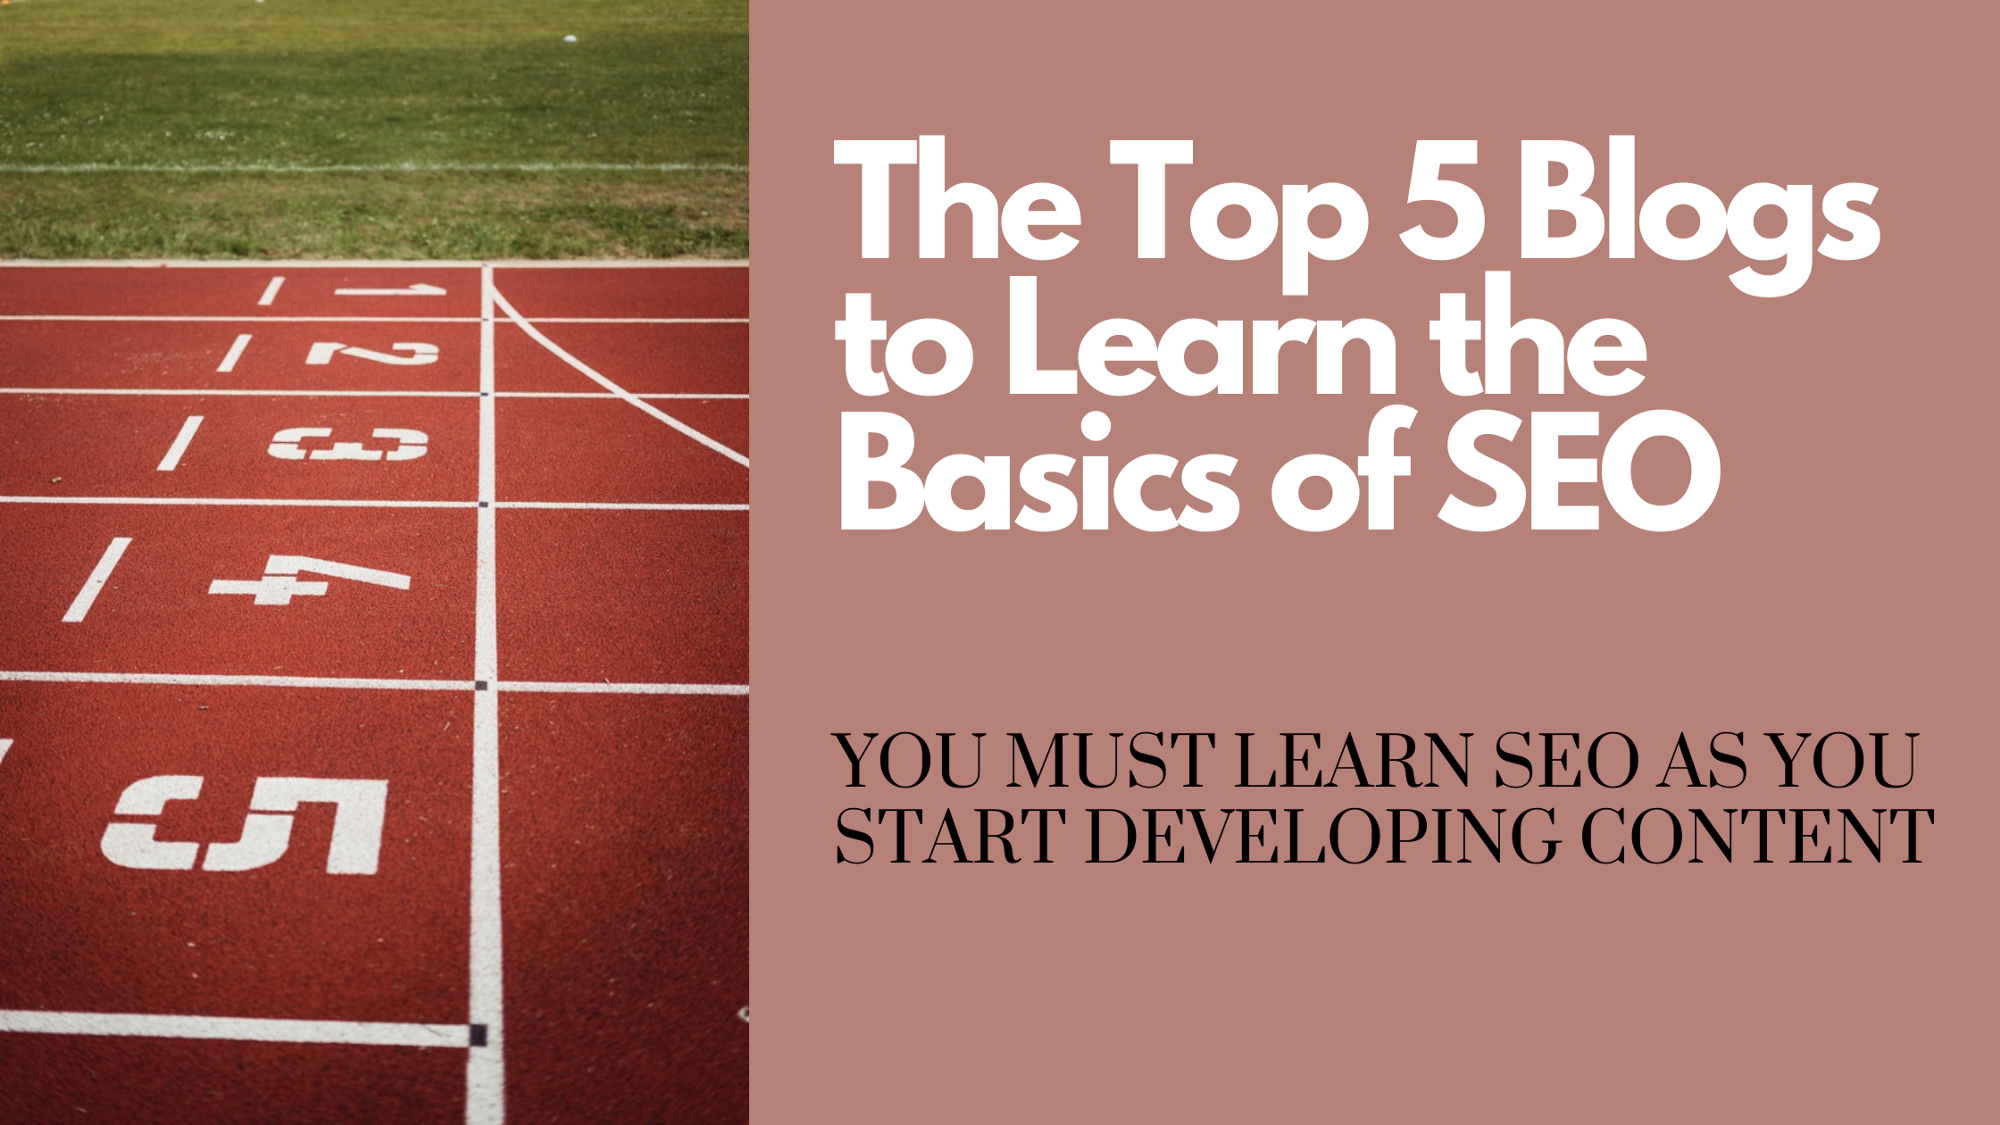 Blog banner that says The Top 5 Blogs to Learn the Basics of SEO